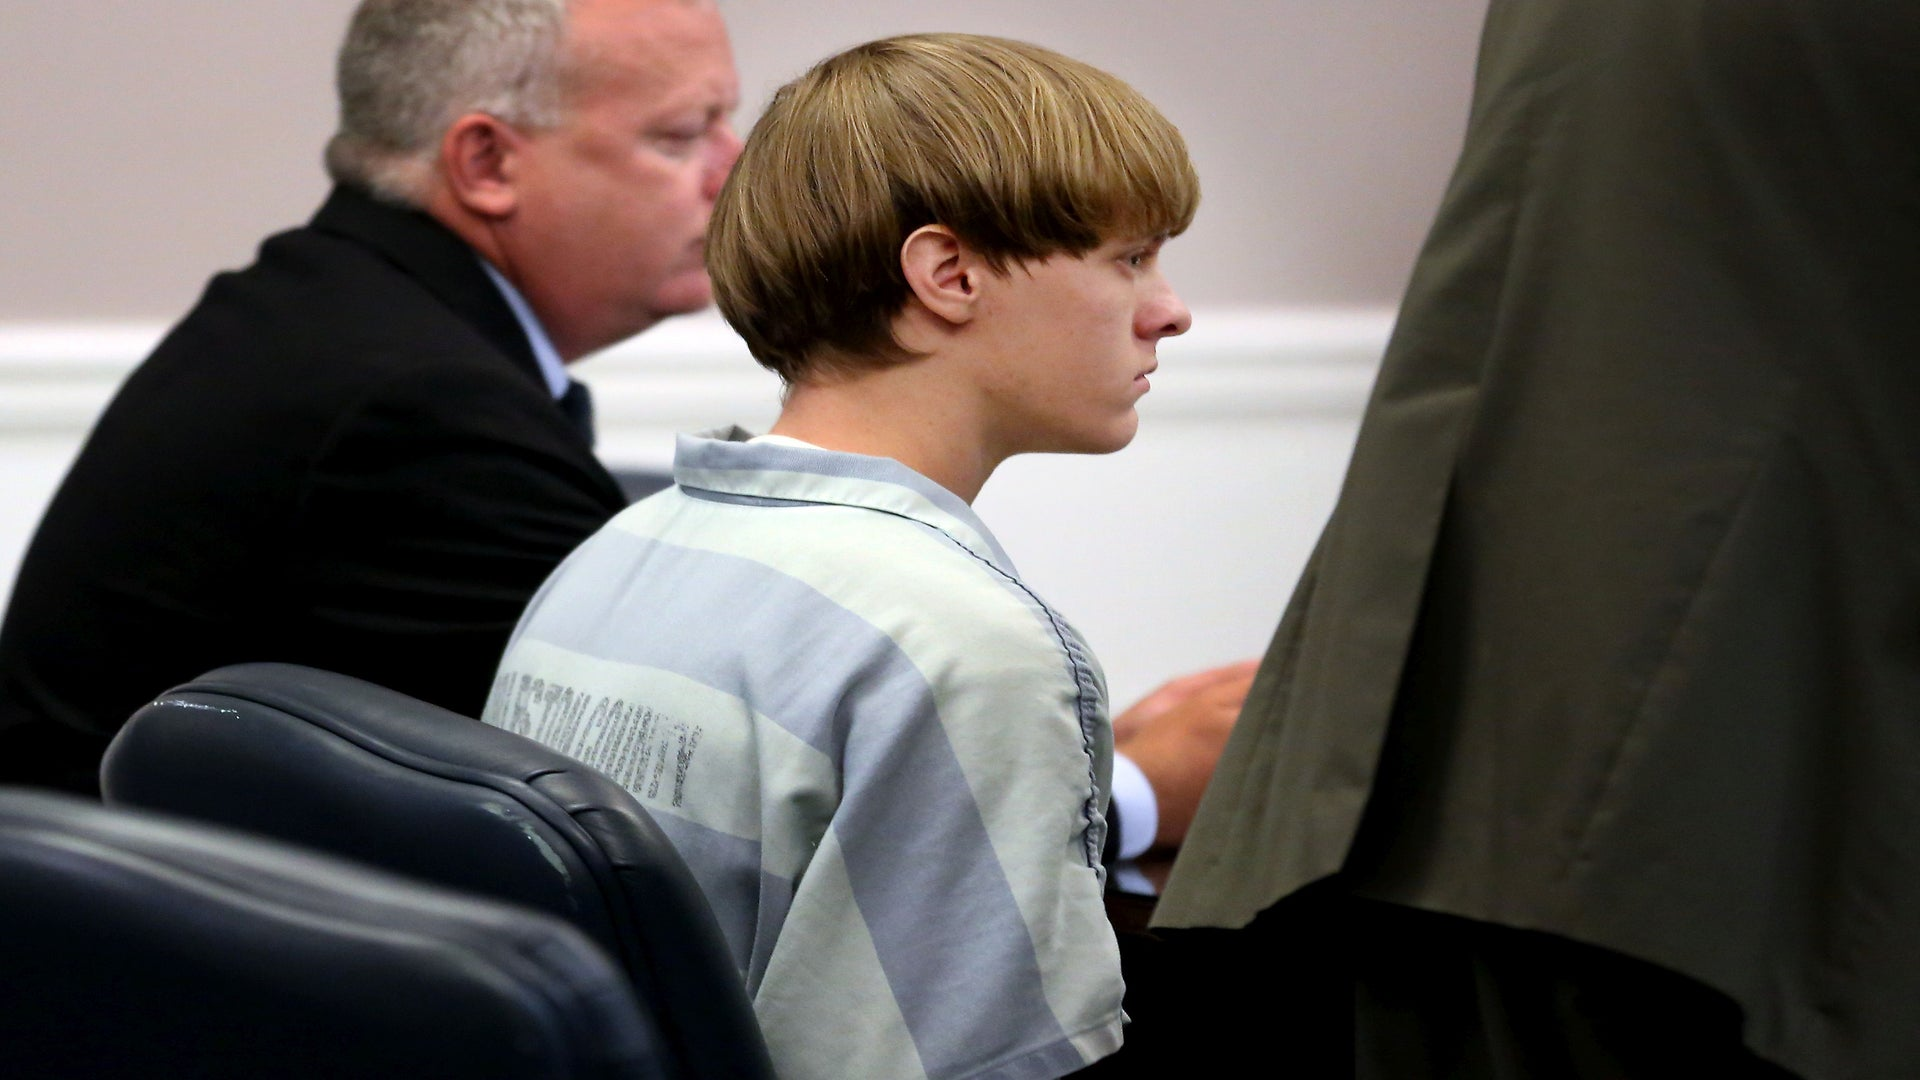 Dylann Roof: 'I Am Not Sorry. I Have Not Shed A Tear For The Innocent People I Killed'